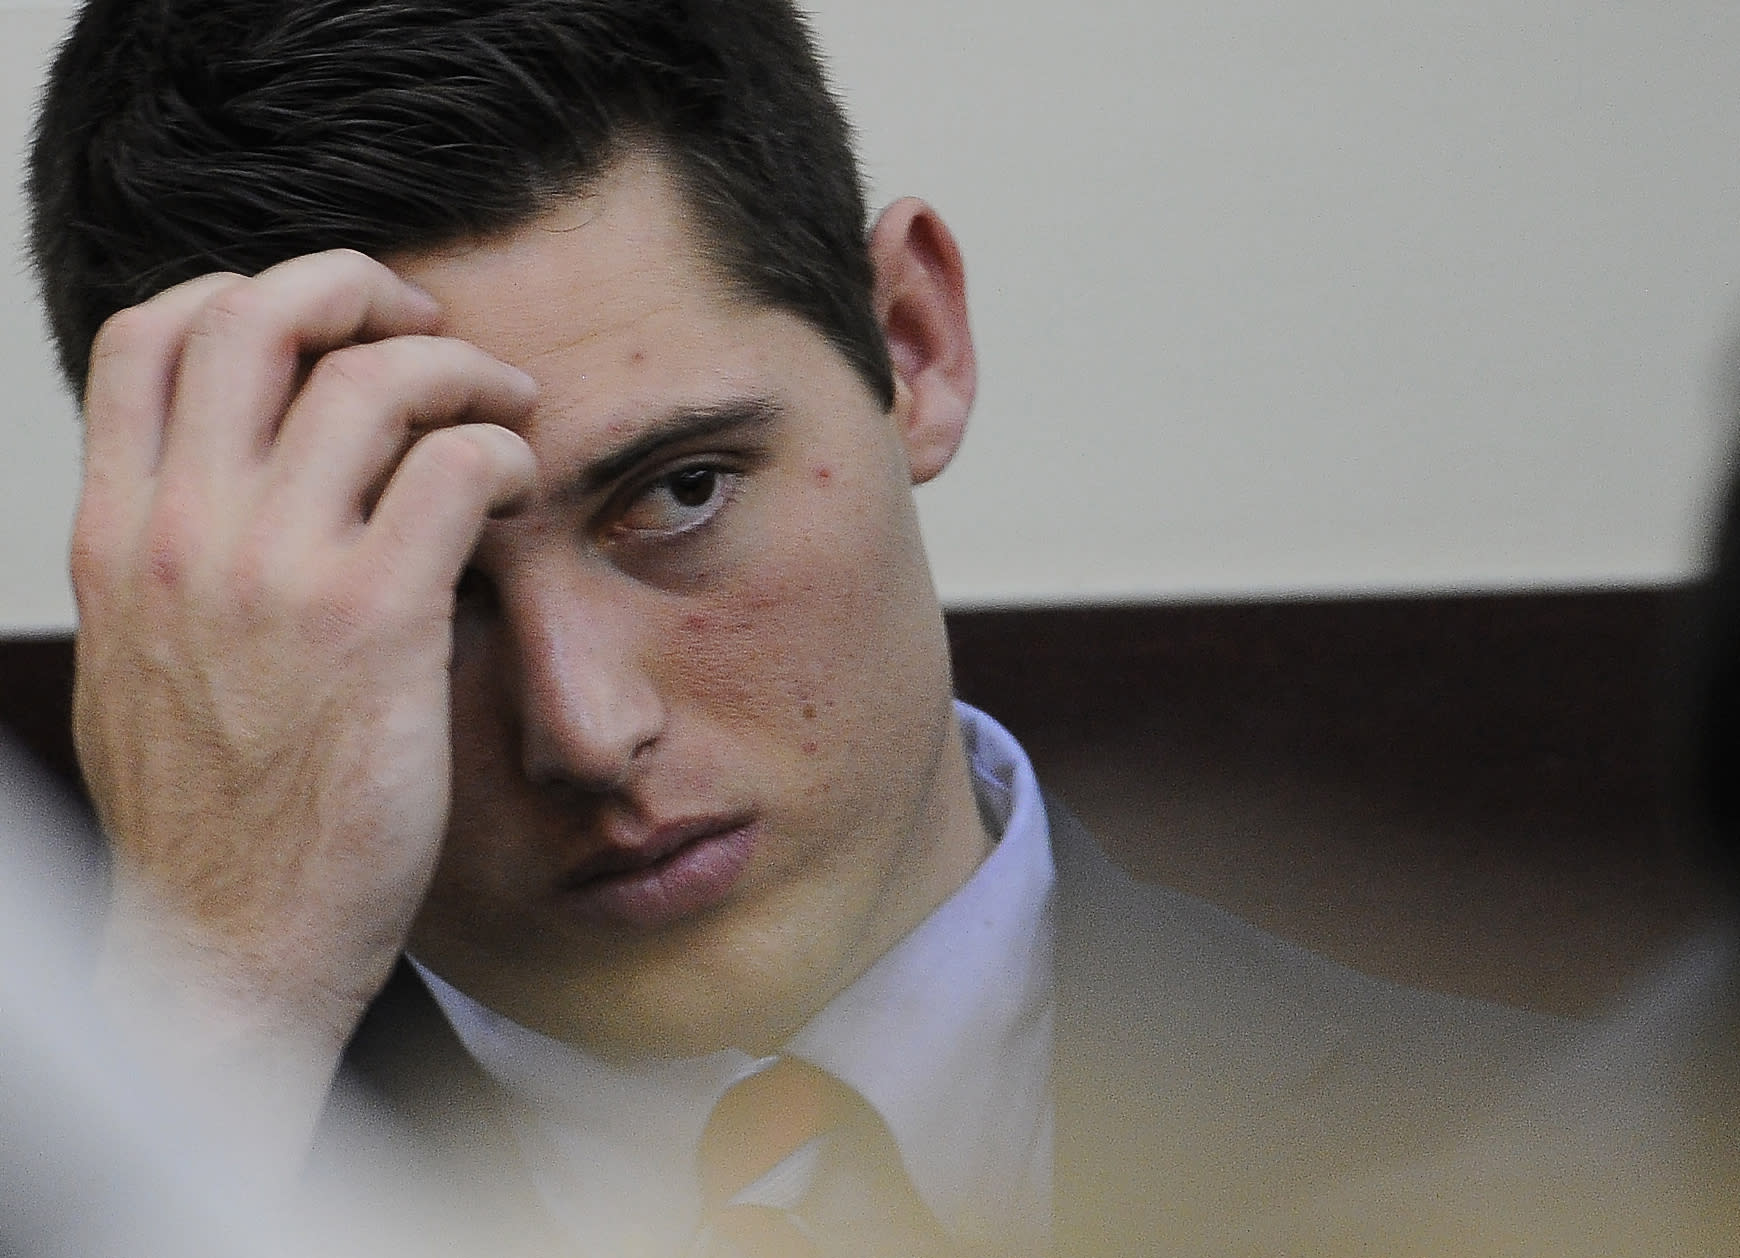 Vanderbilt rape verdicts signal support for assault victims